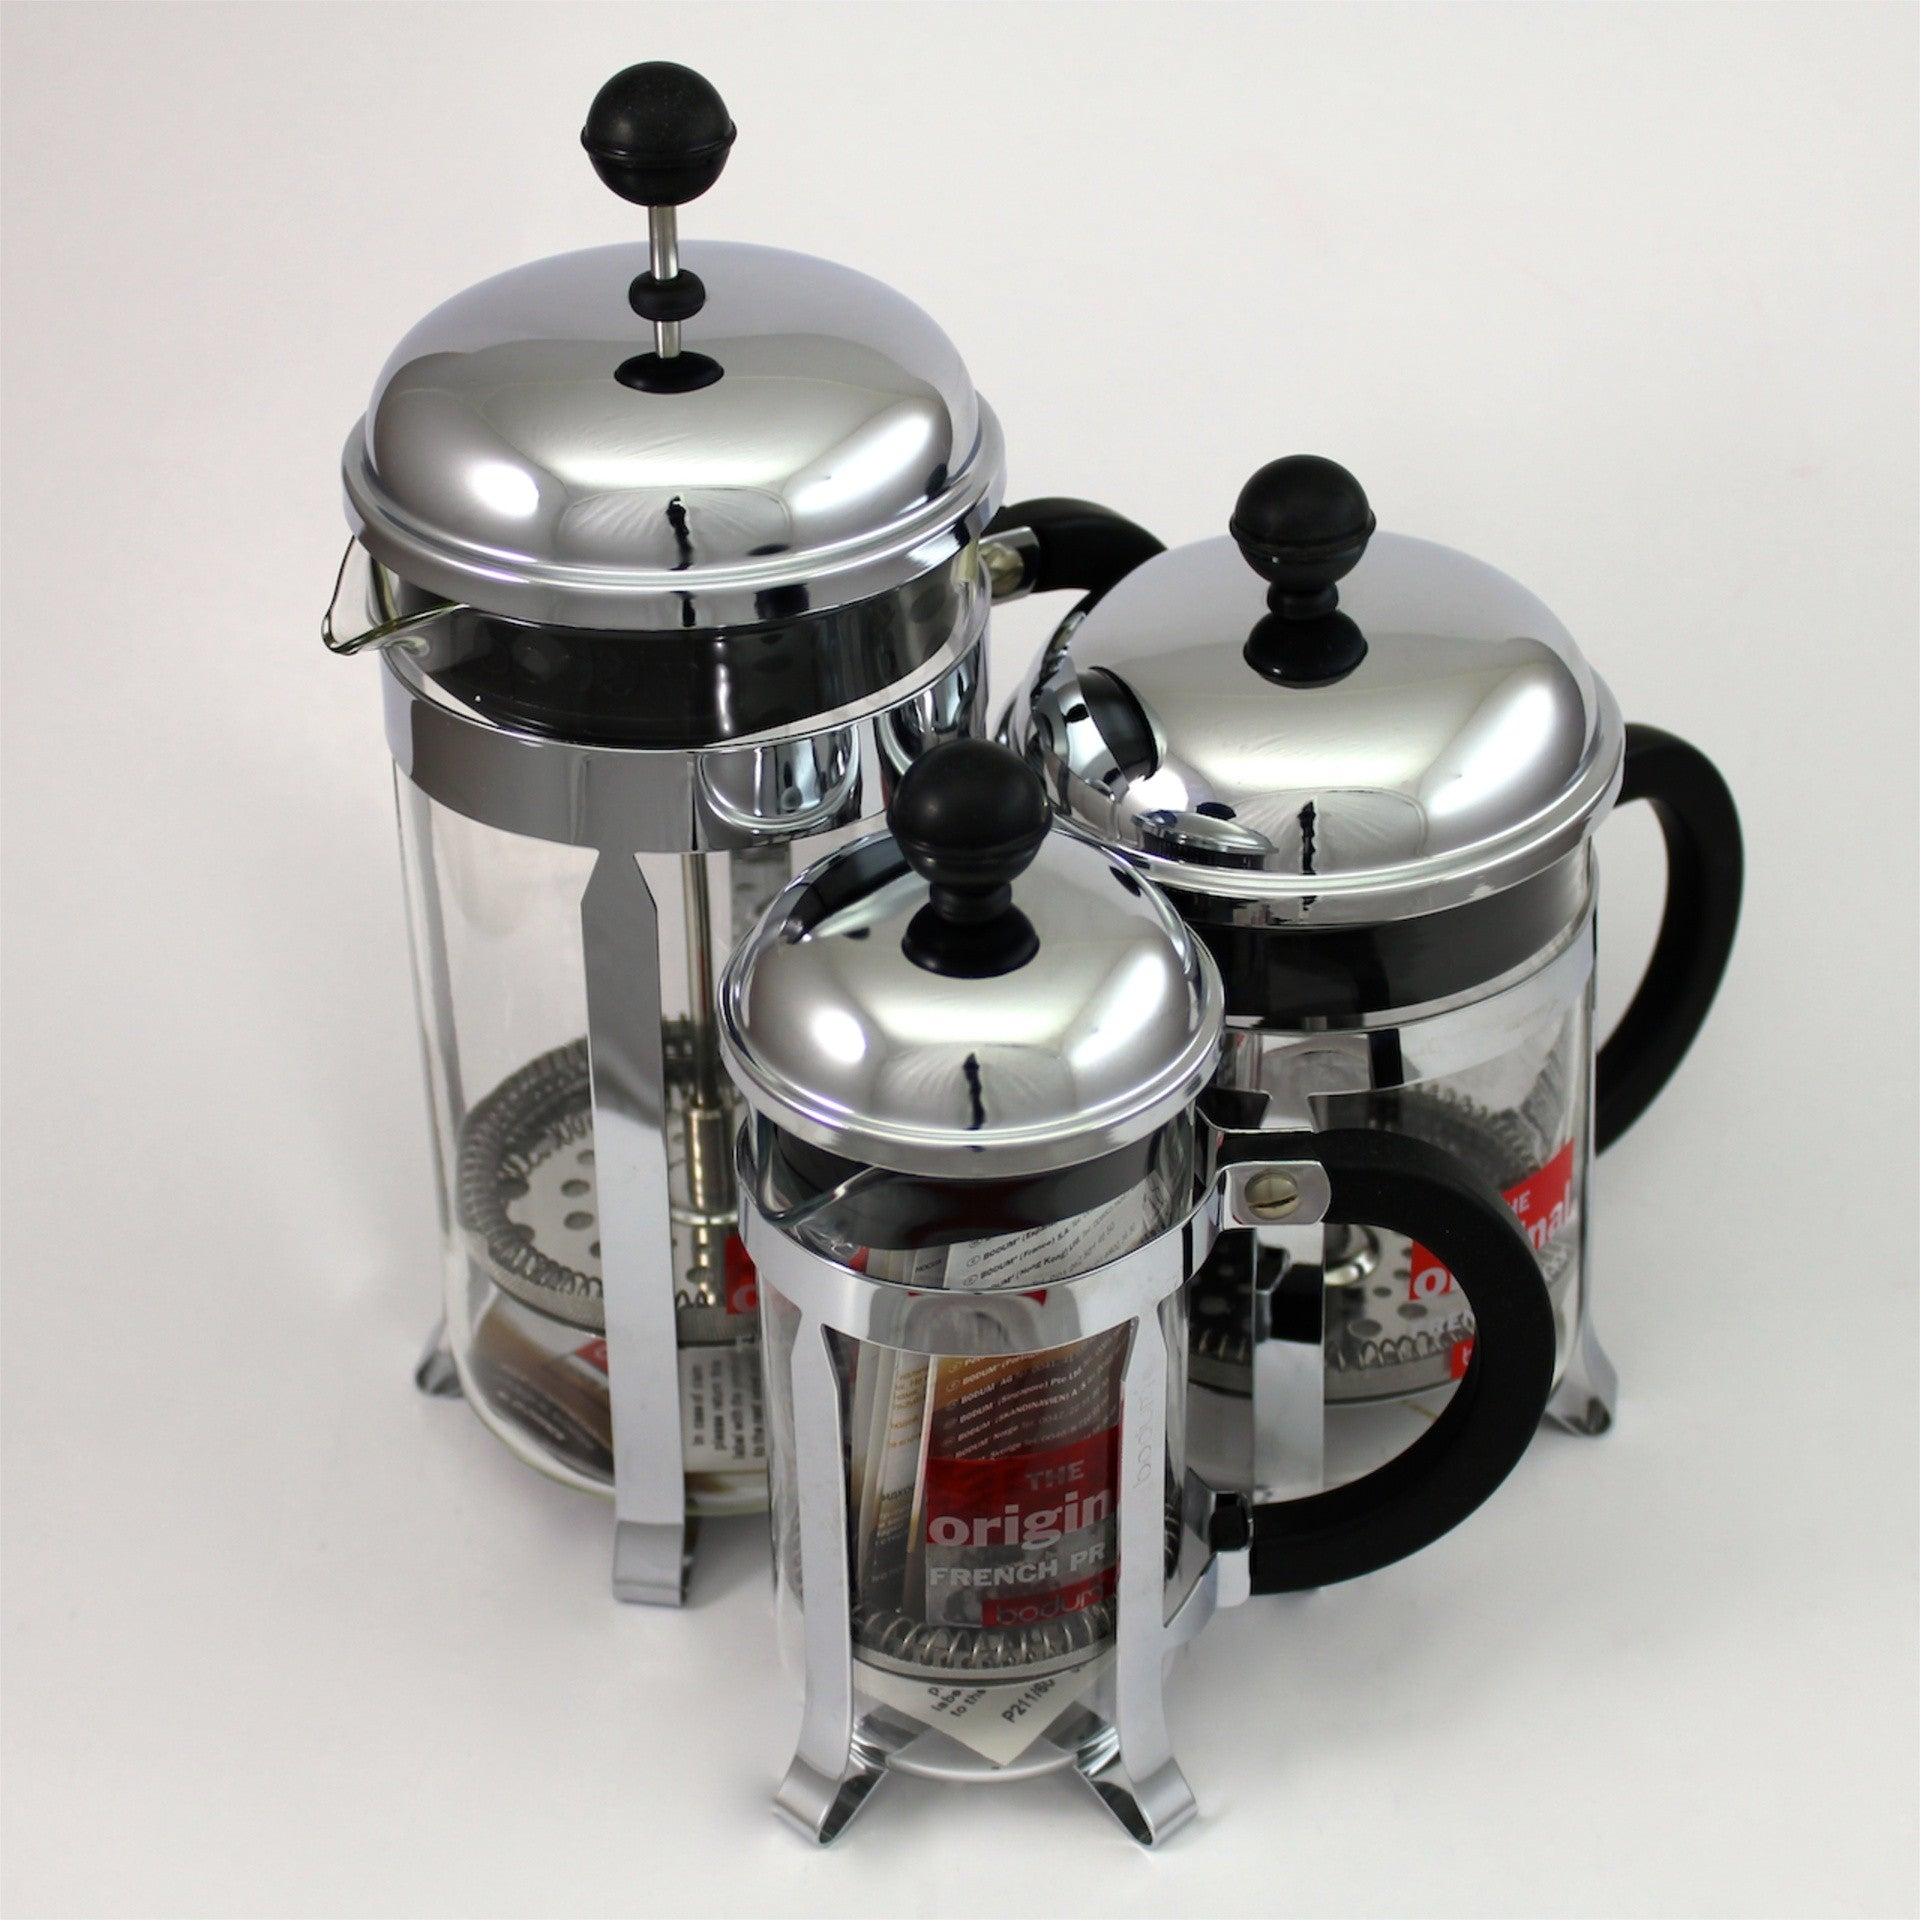 Brewing Equipment Soft Brew Coffee Pour Over Filter Stovetop Espro Press Medium 530ml Bodum Chambord Plunger